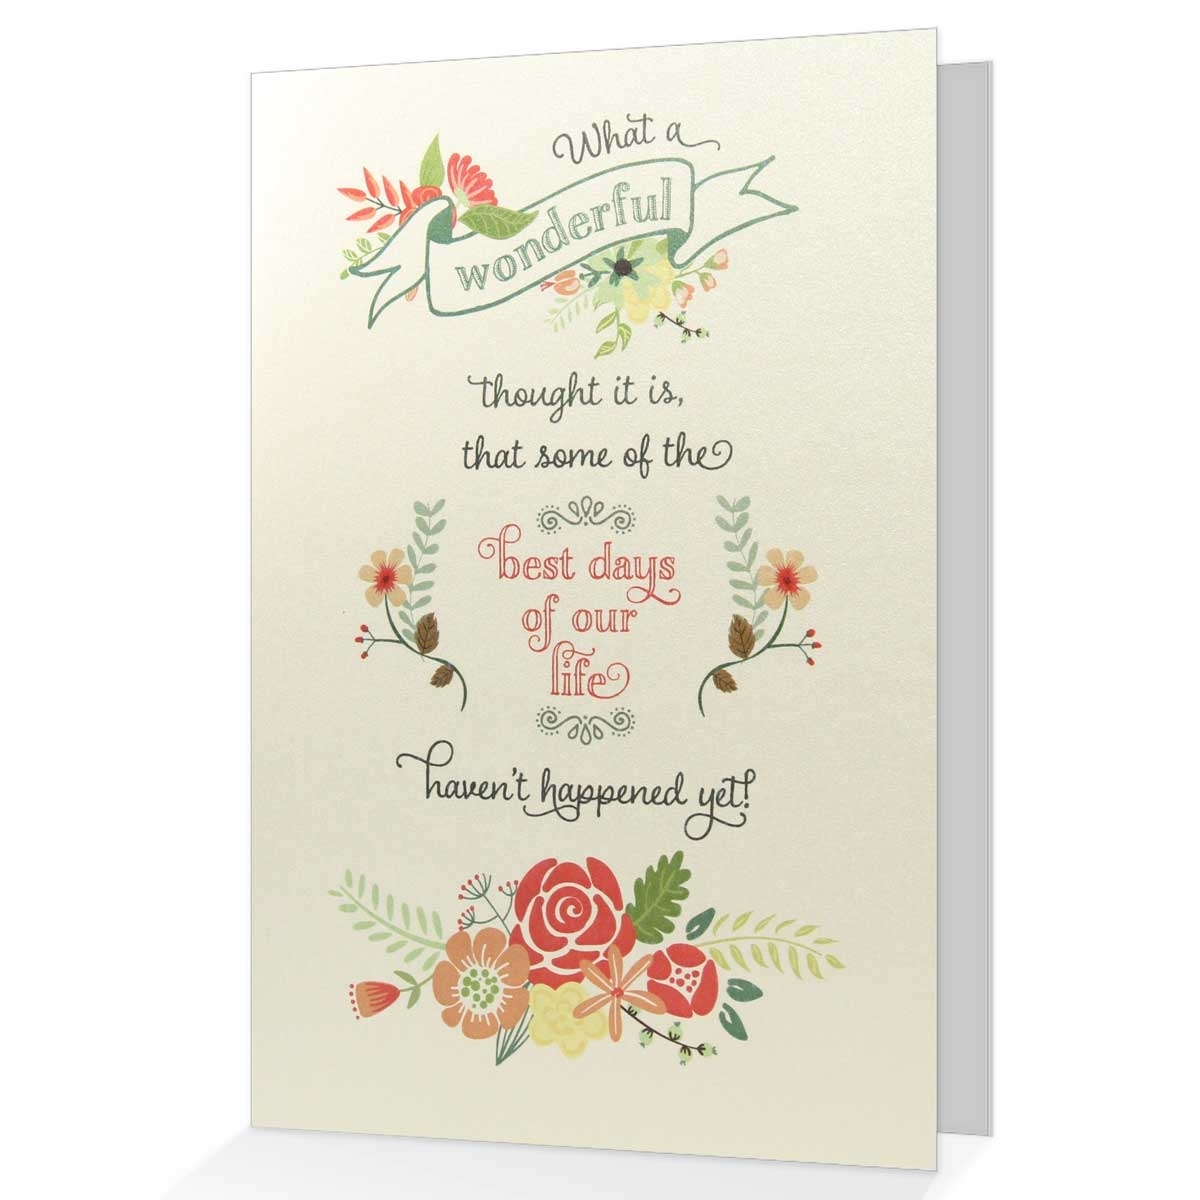 Best days cheer up card view larger photo email m4hsunfo